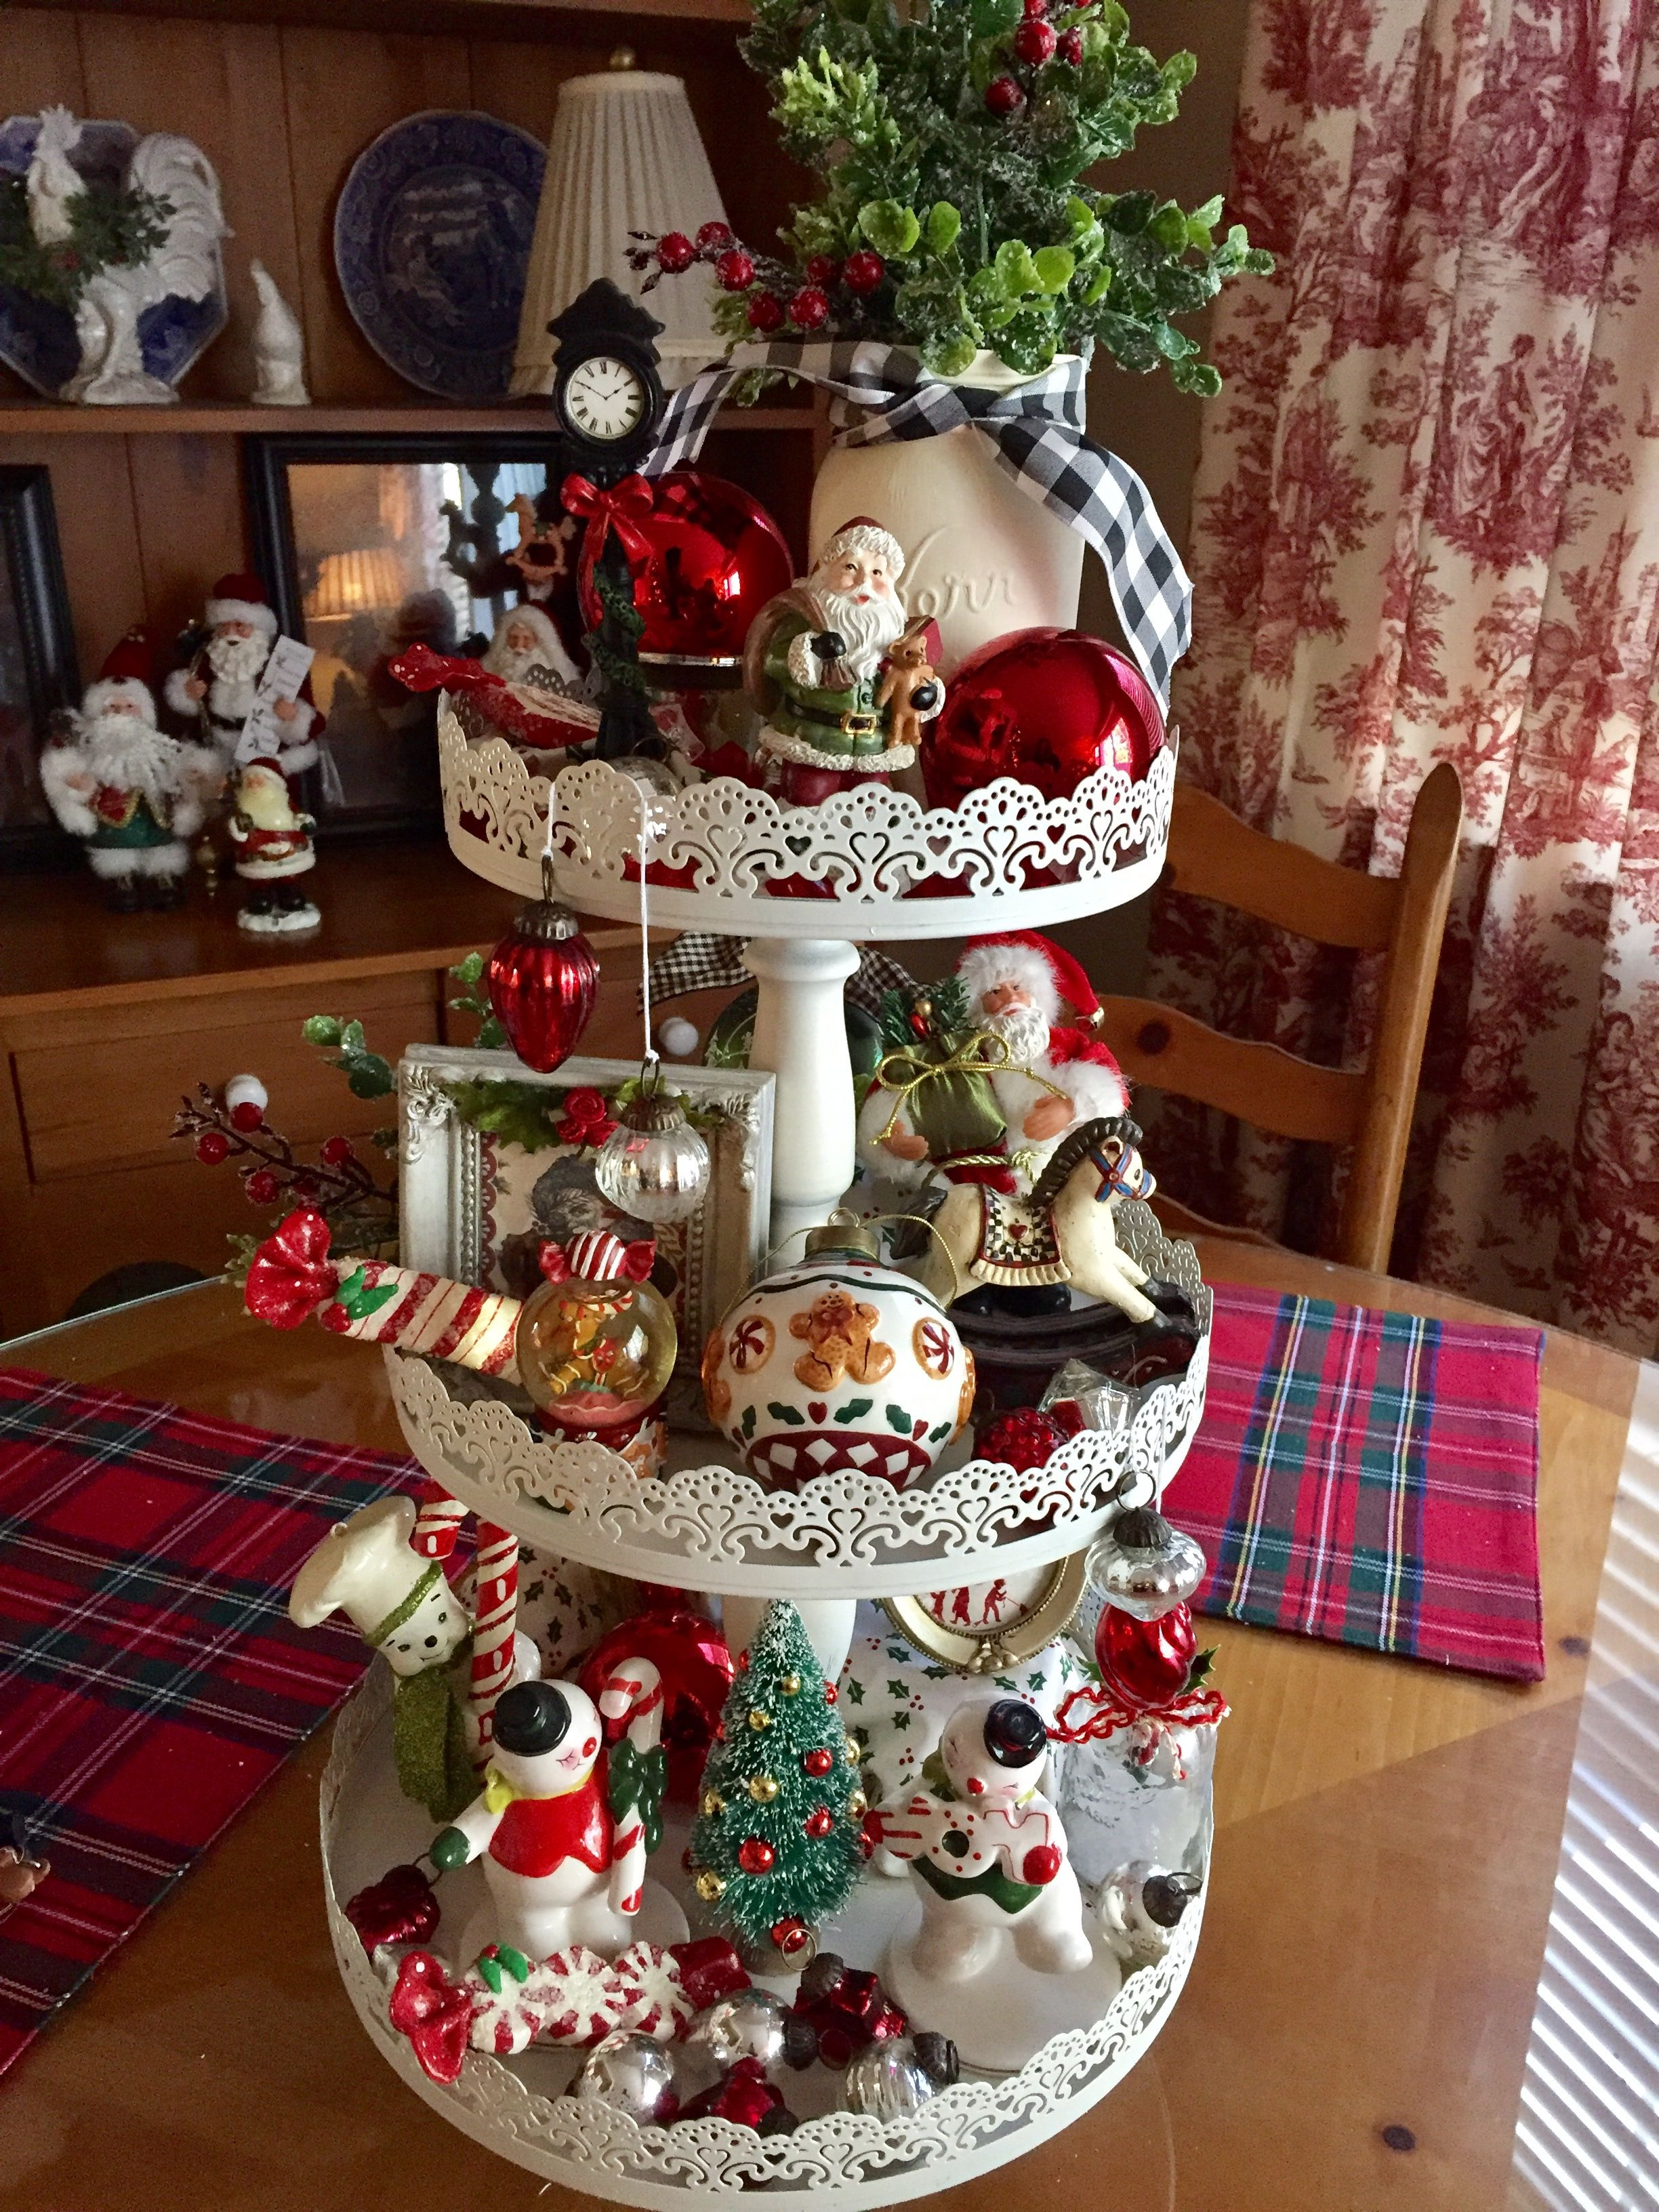 Another beautiful Christmas tier for your table centerpiece